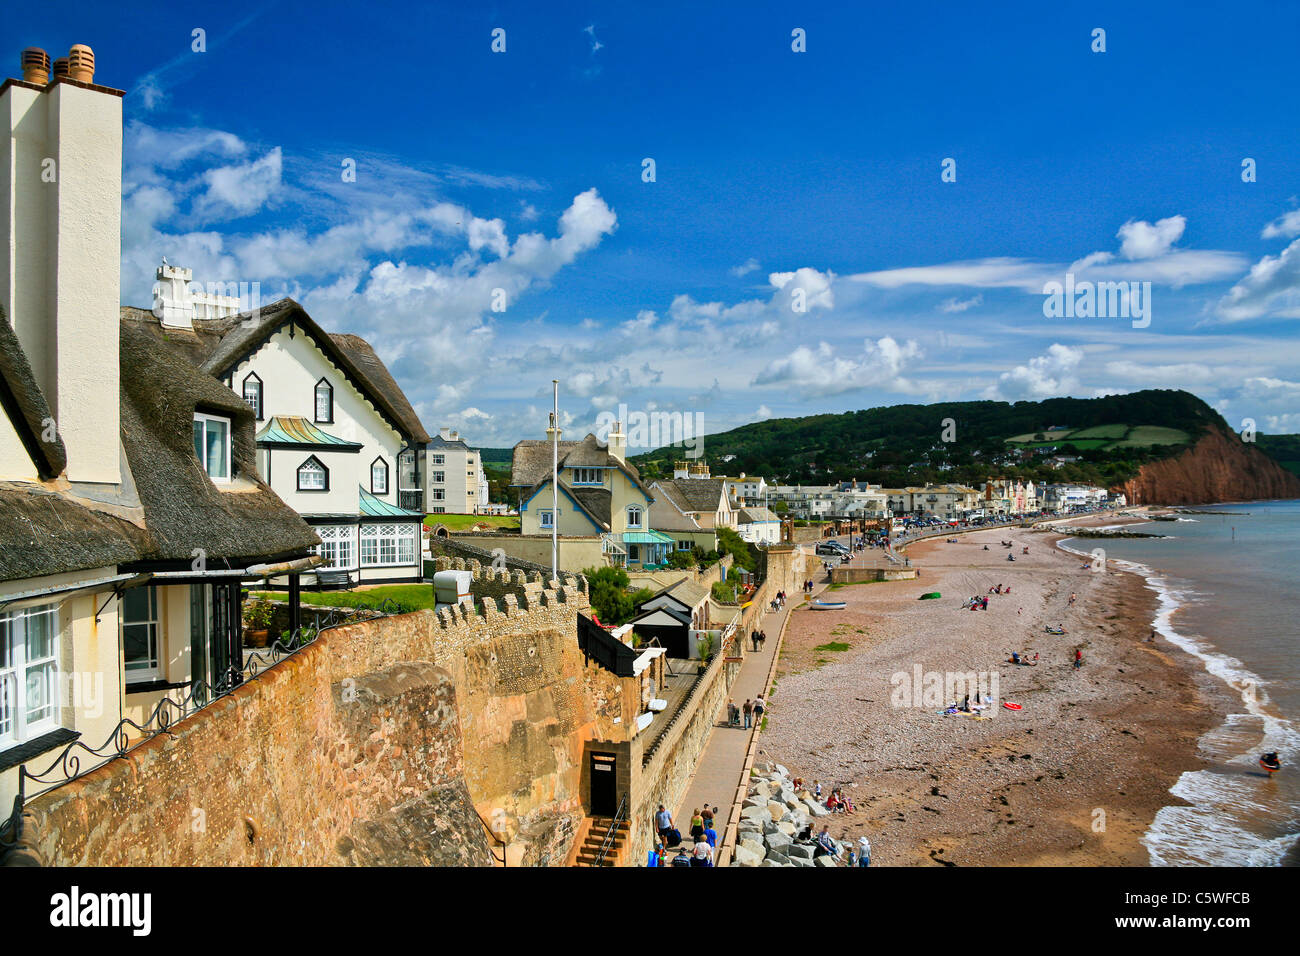 The beach at Sidmouth, Devon, England, UK - Stock Image